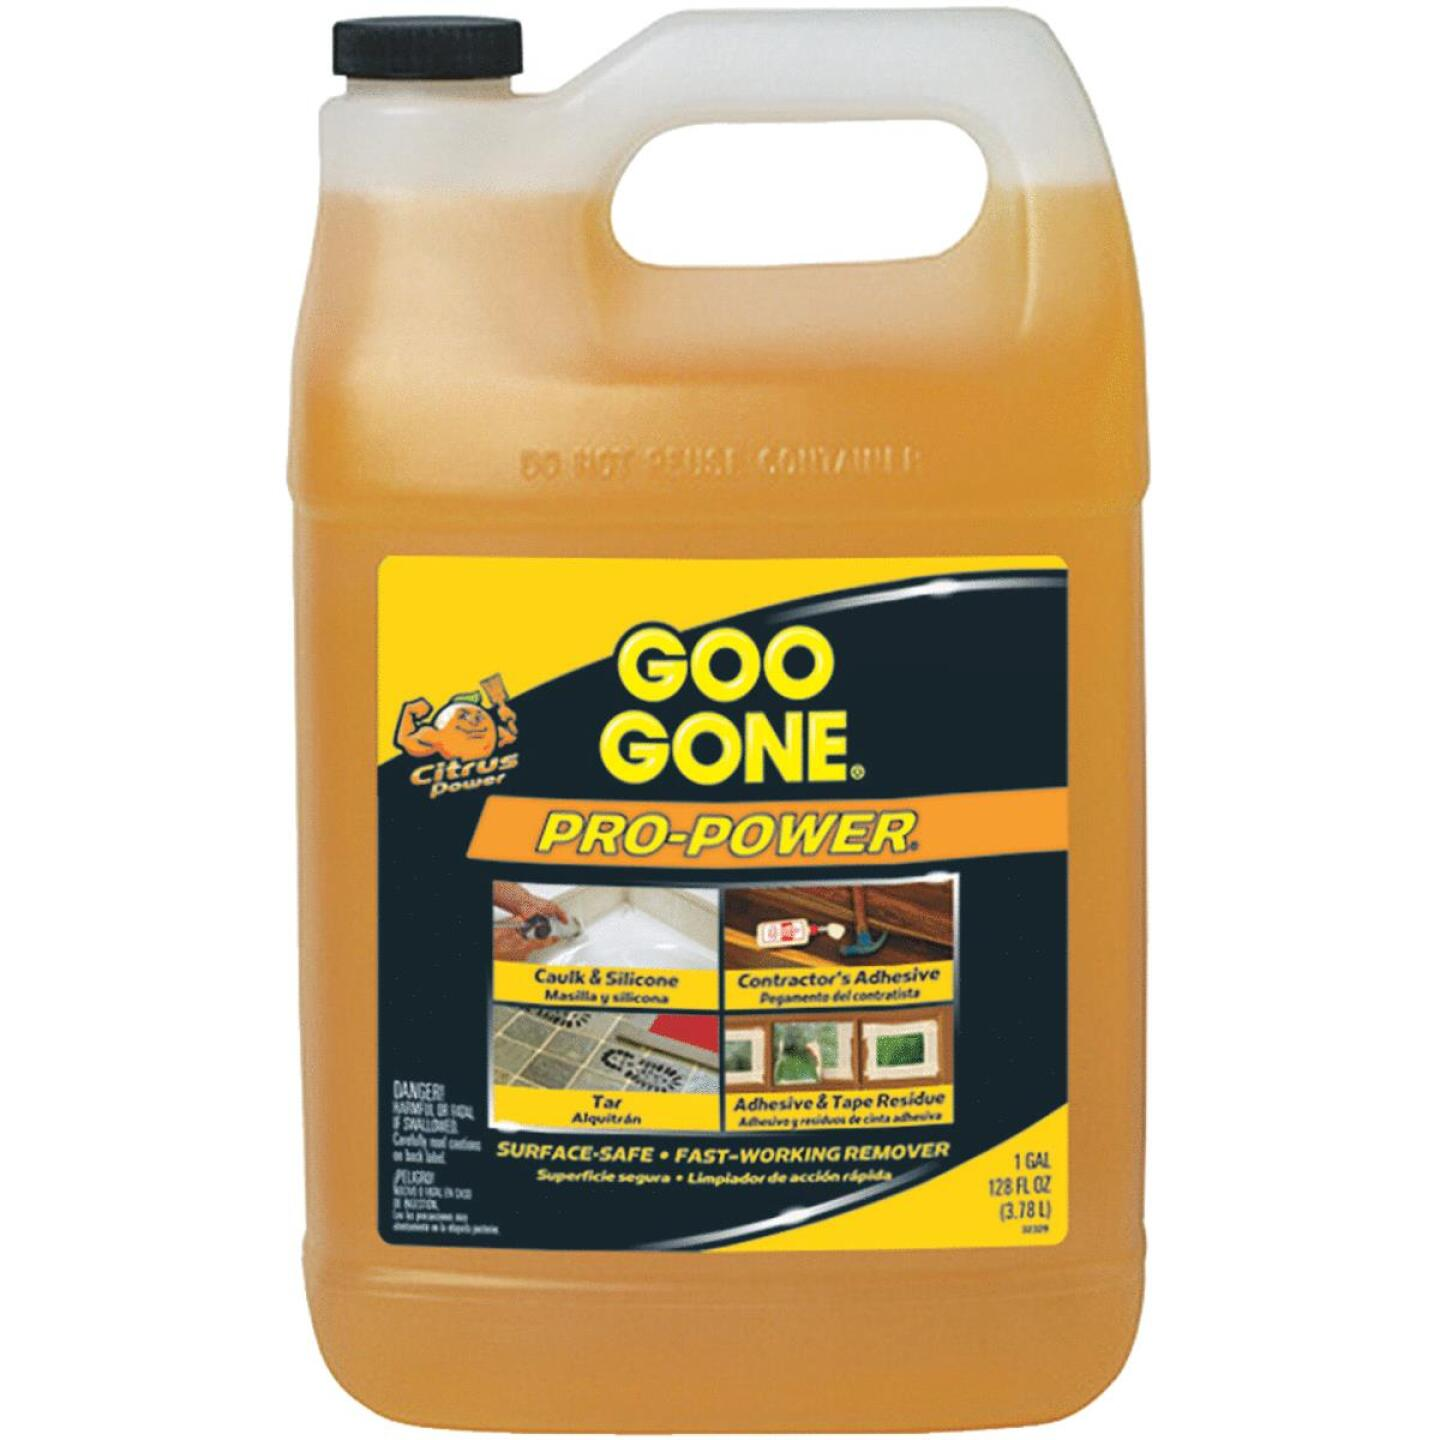 Goo Gone 1 Gal. Pro-Power Adhesive Remover Image 317